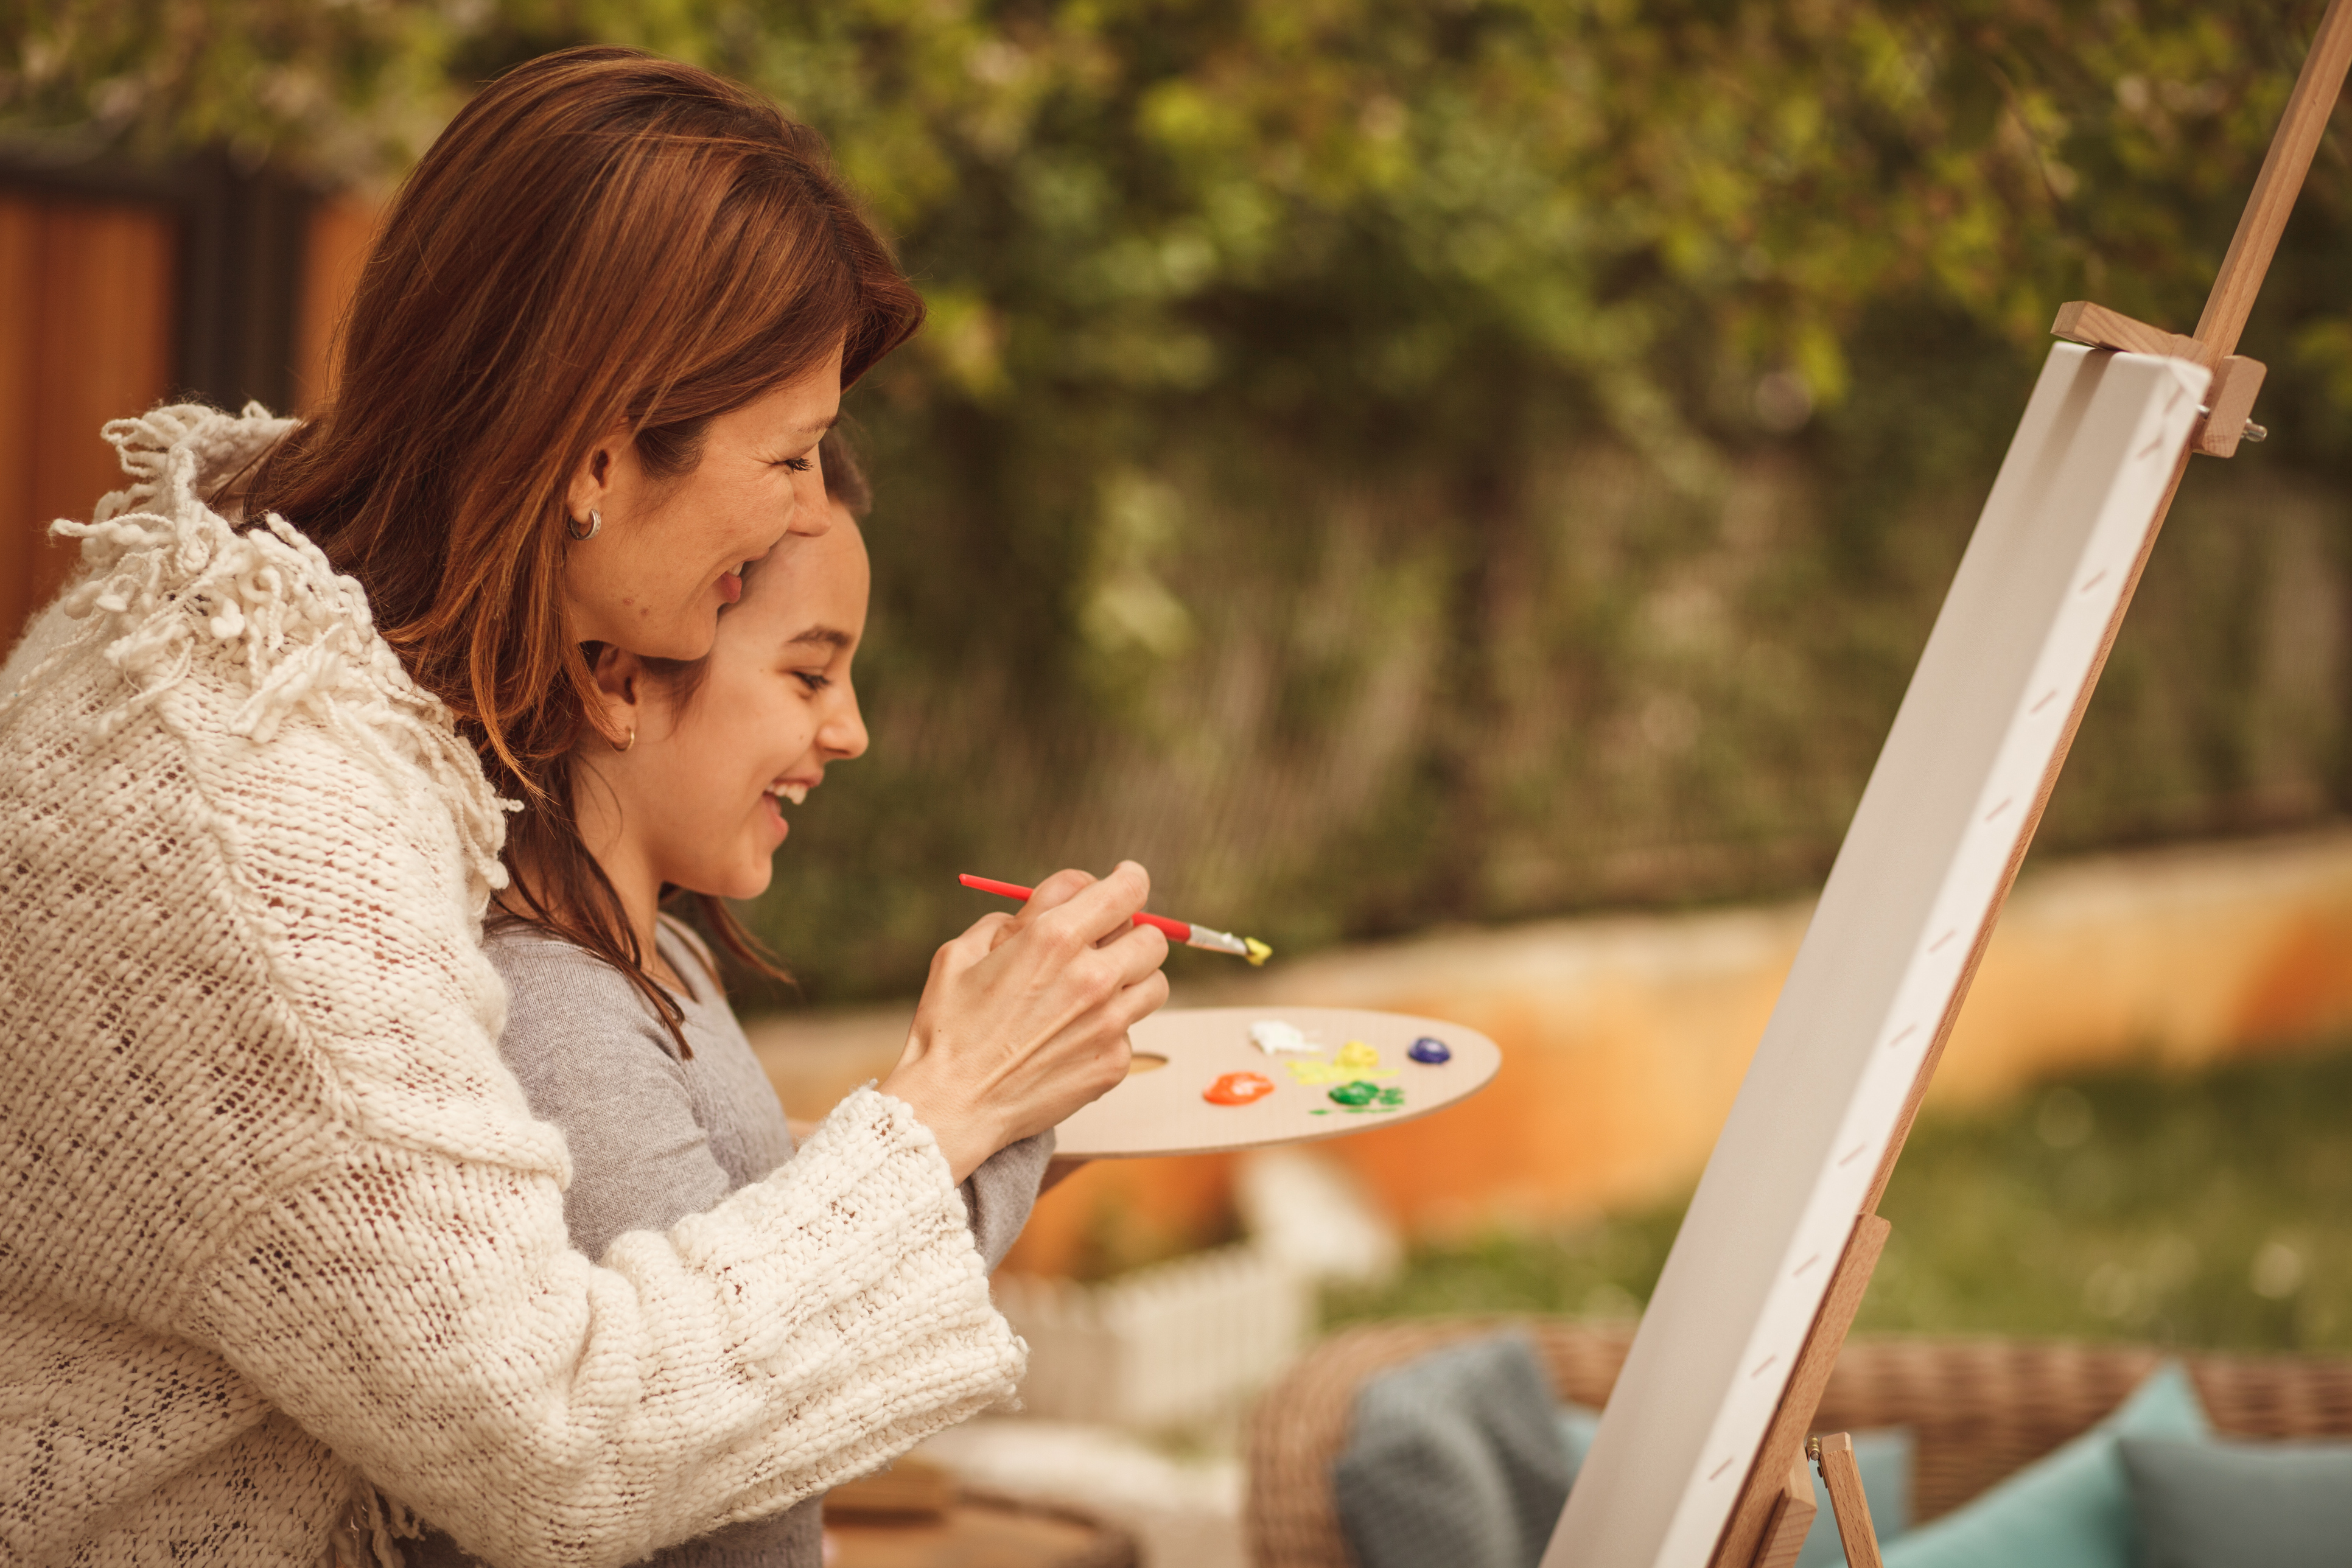 Image of a mother painting a canvas with her daughter.